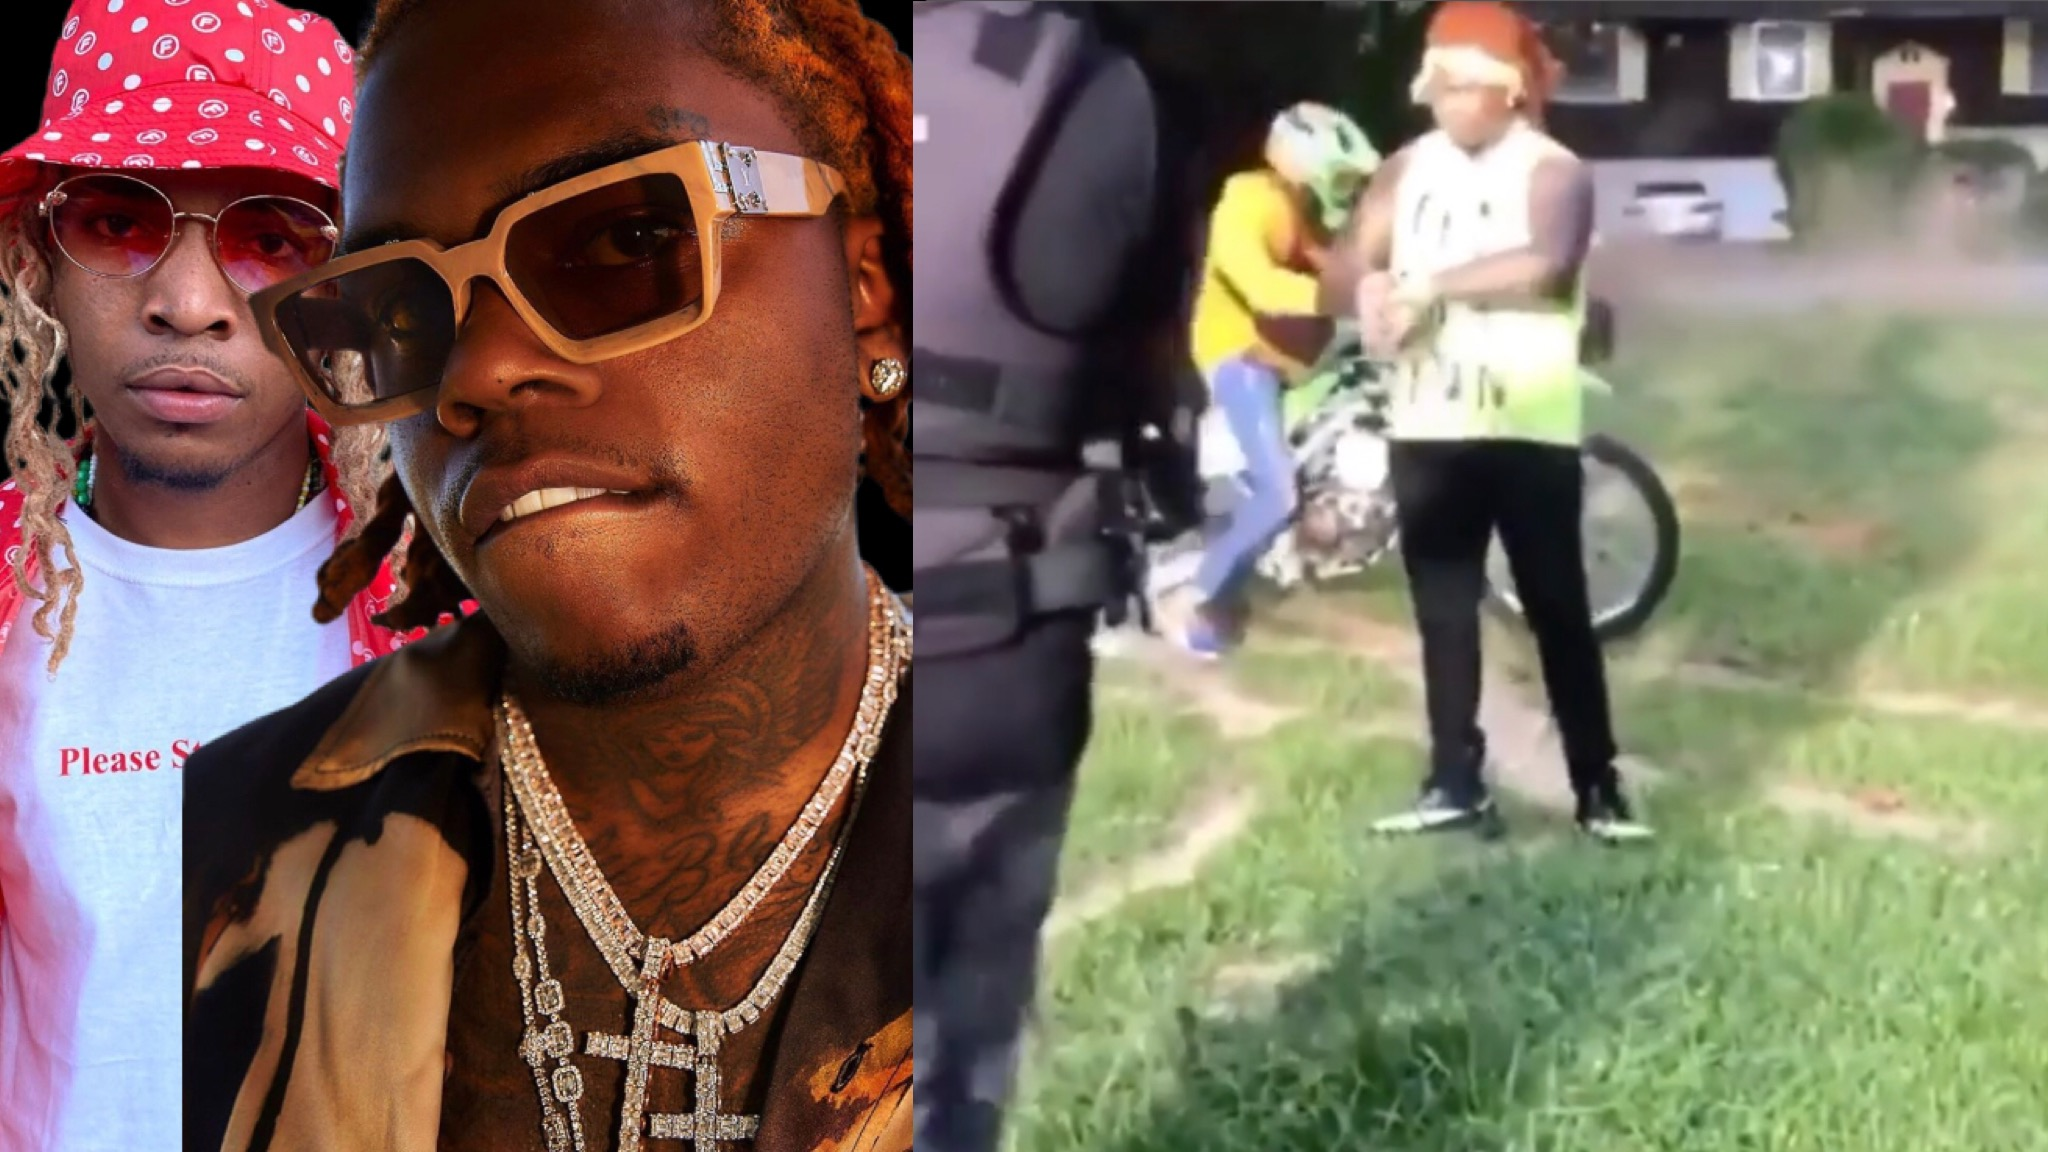 Gunna And Link Keed Shot At During Videoshoot In ATL